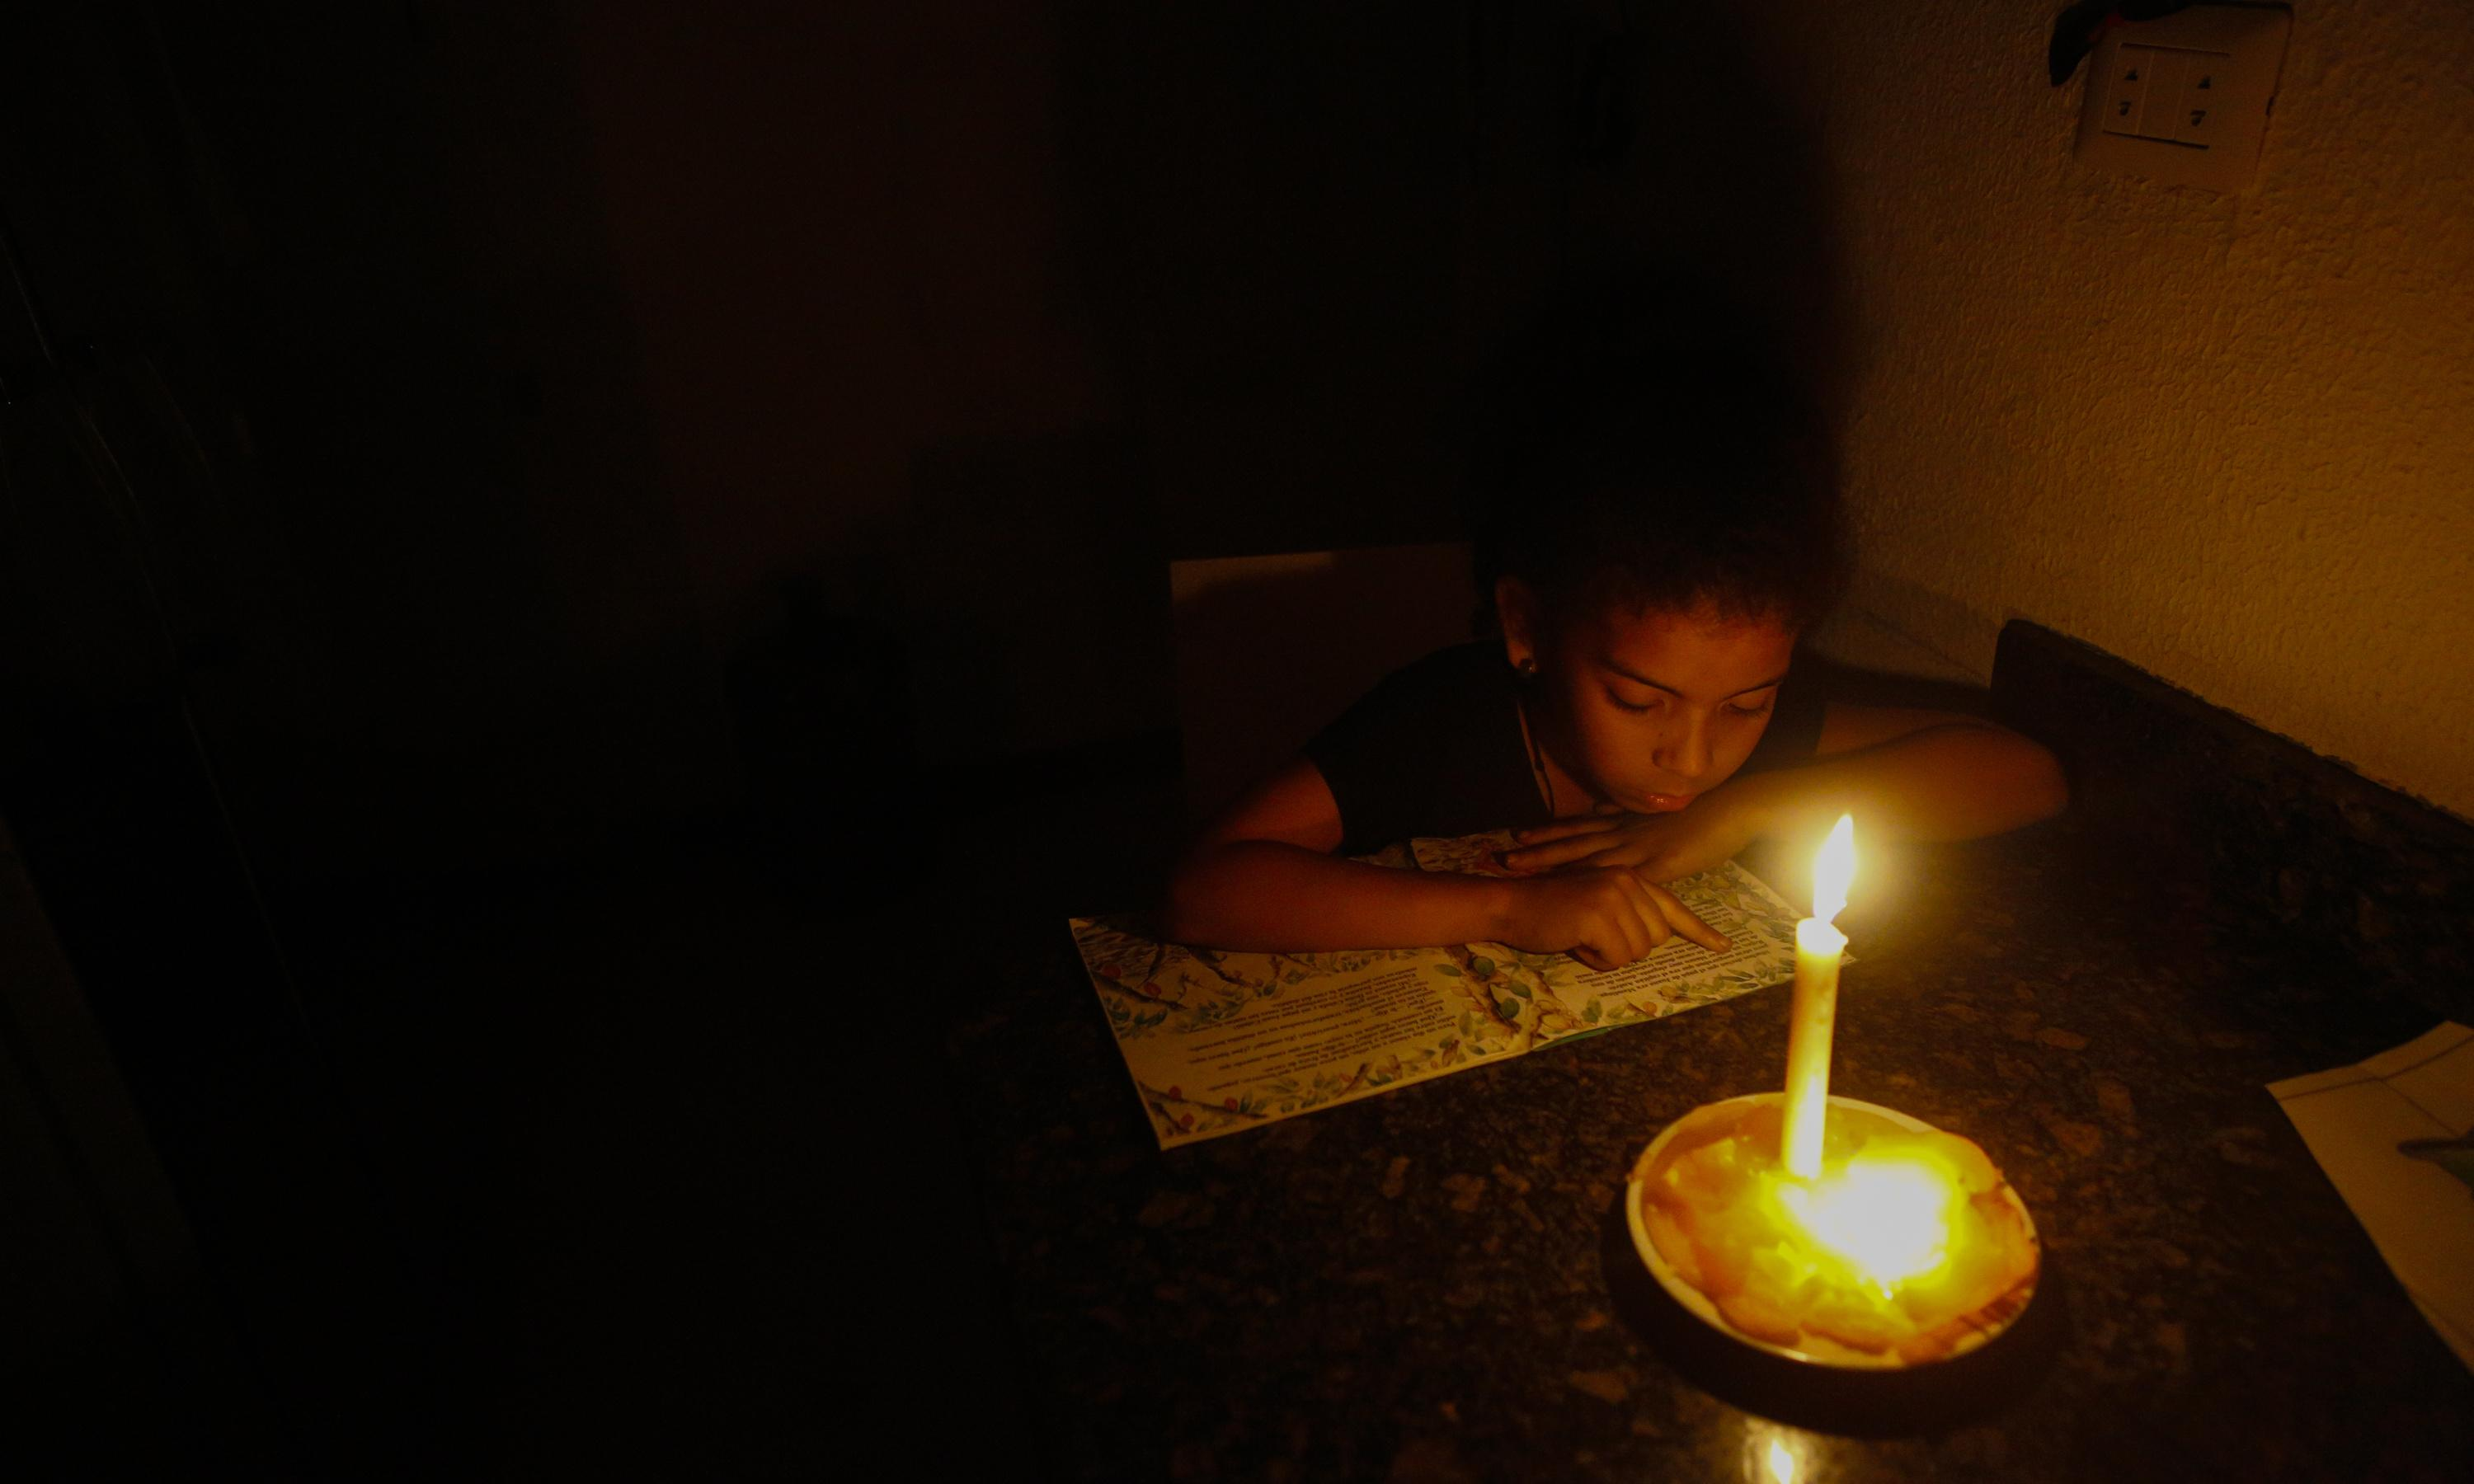 Venezuela blackout: what caused it and what happens next?